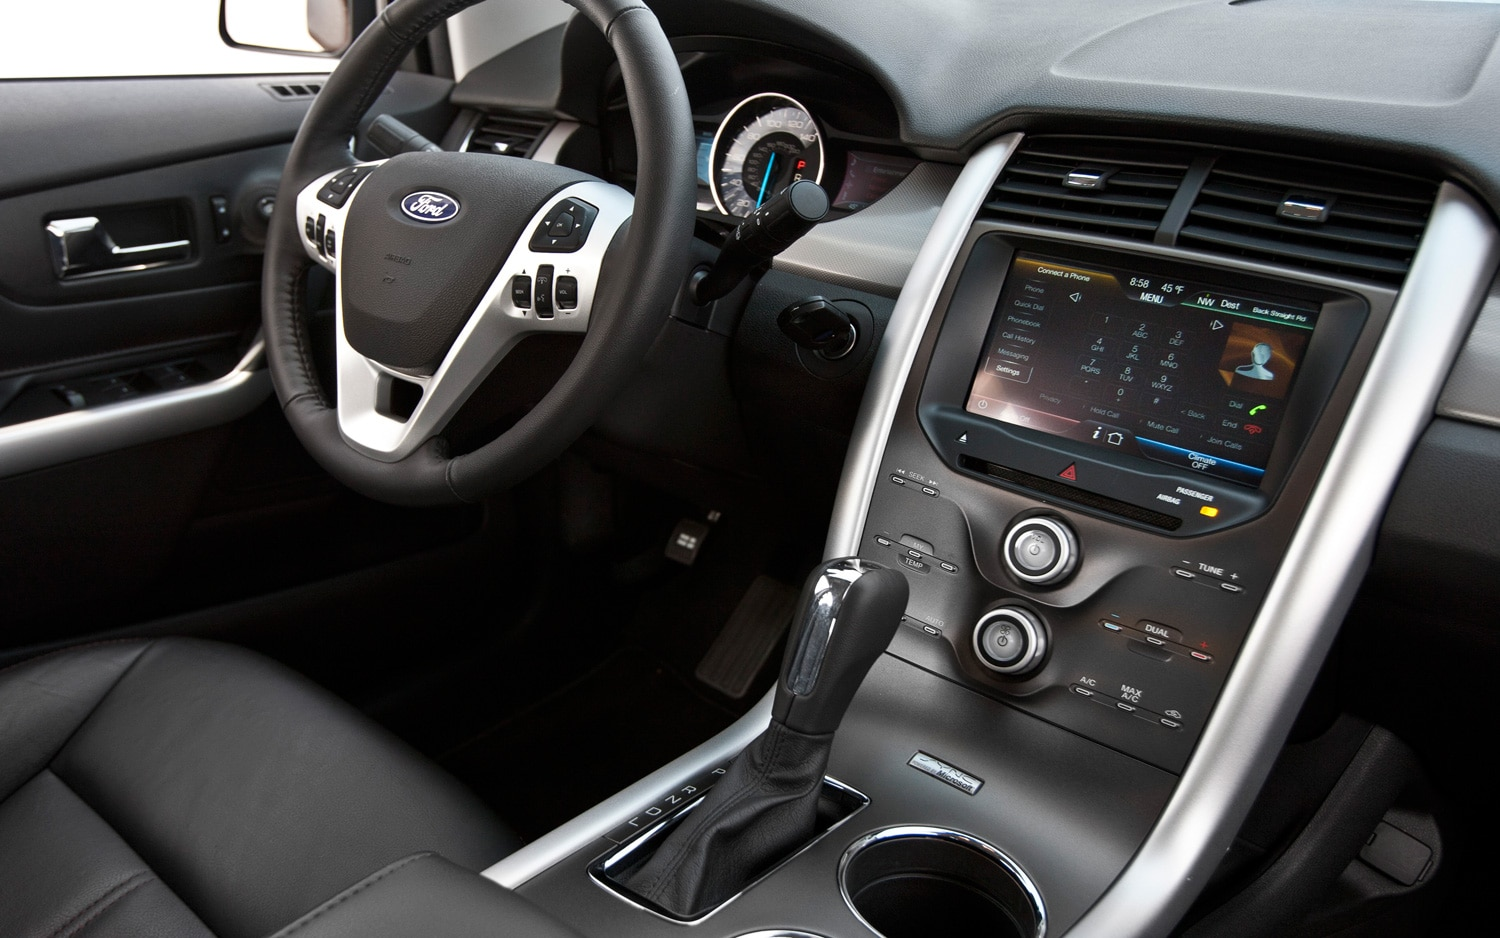 2012 Ford Edge SEL Ecoboost Interior